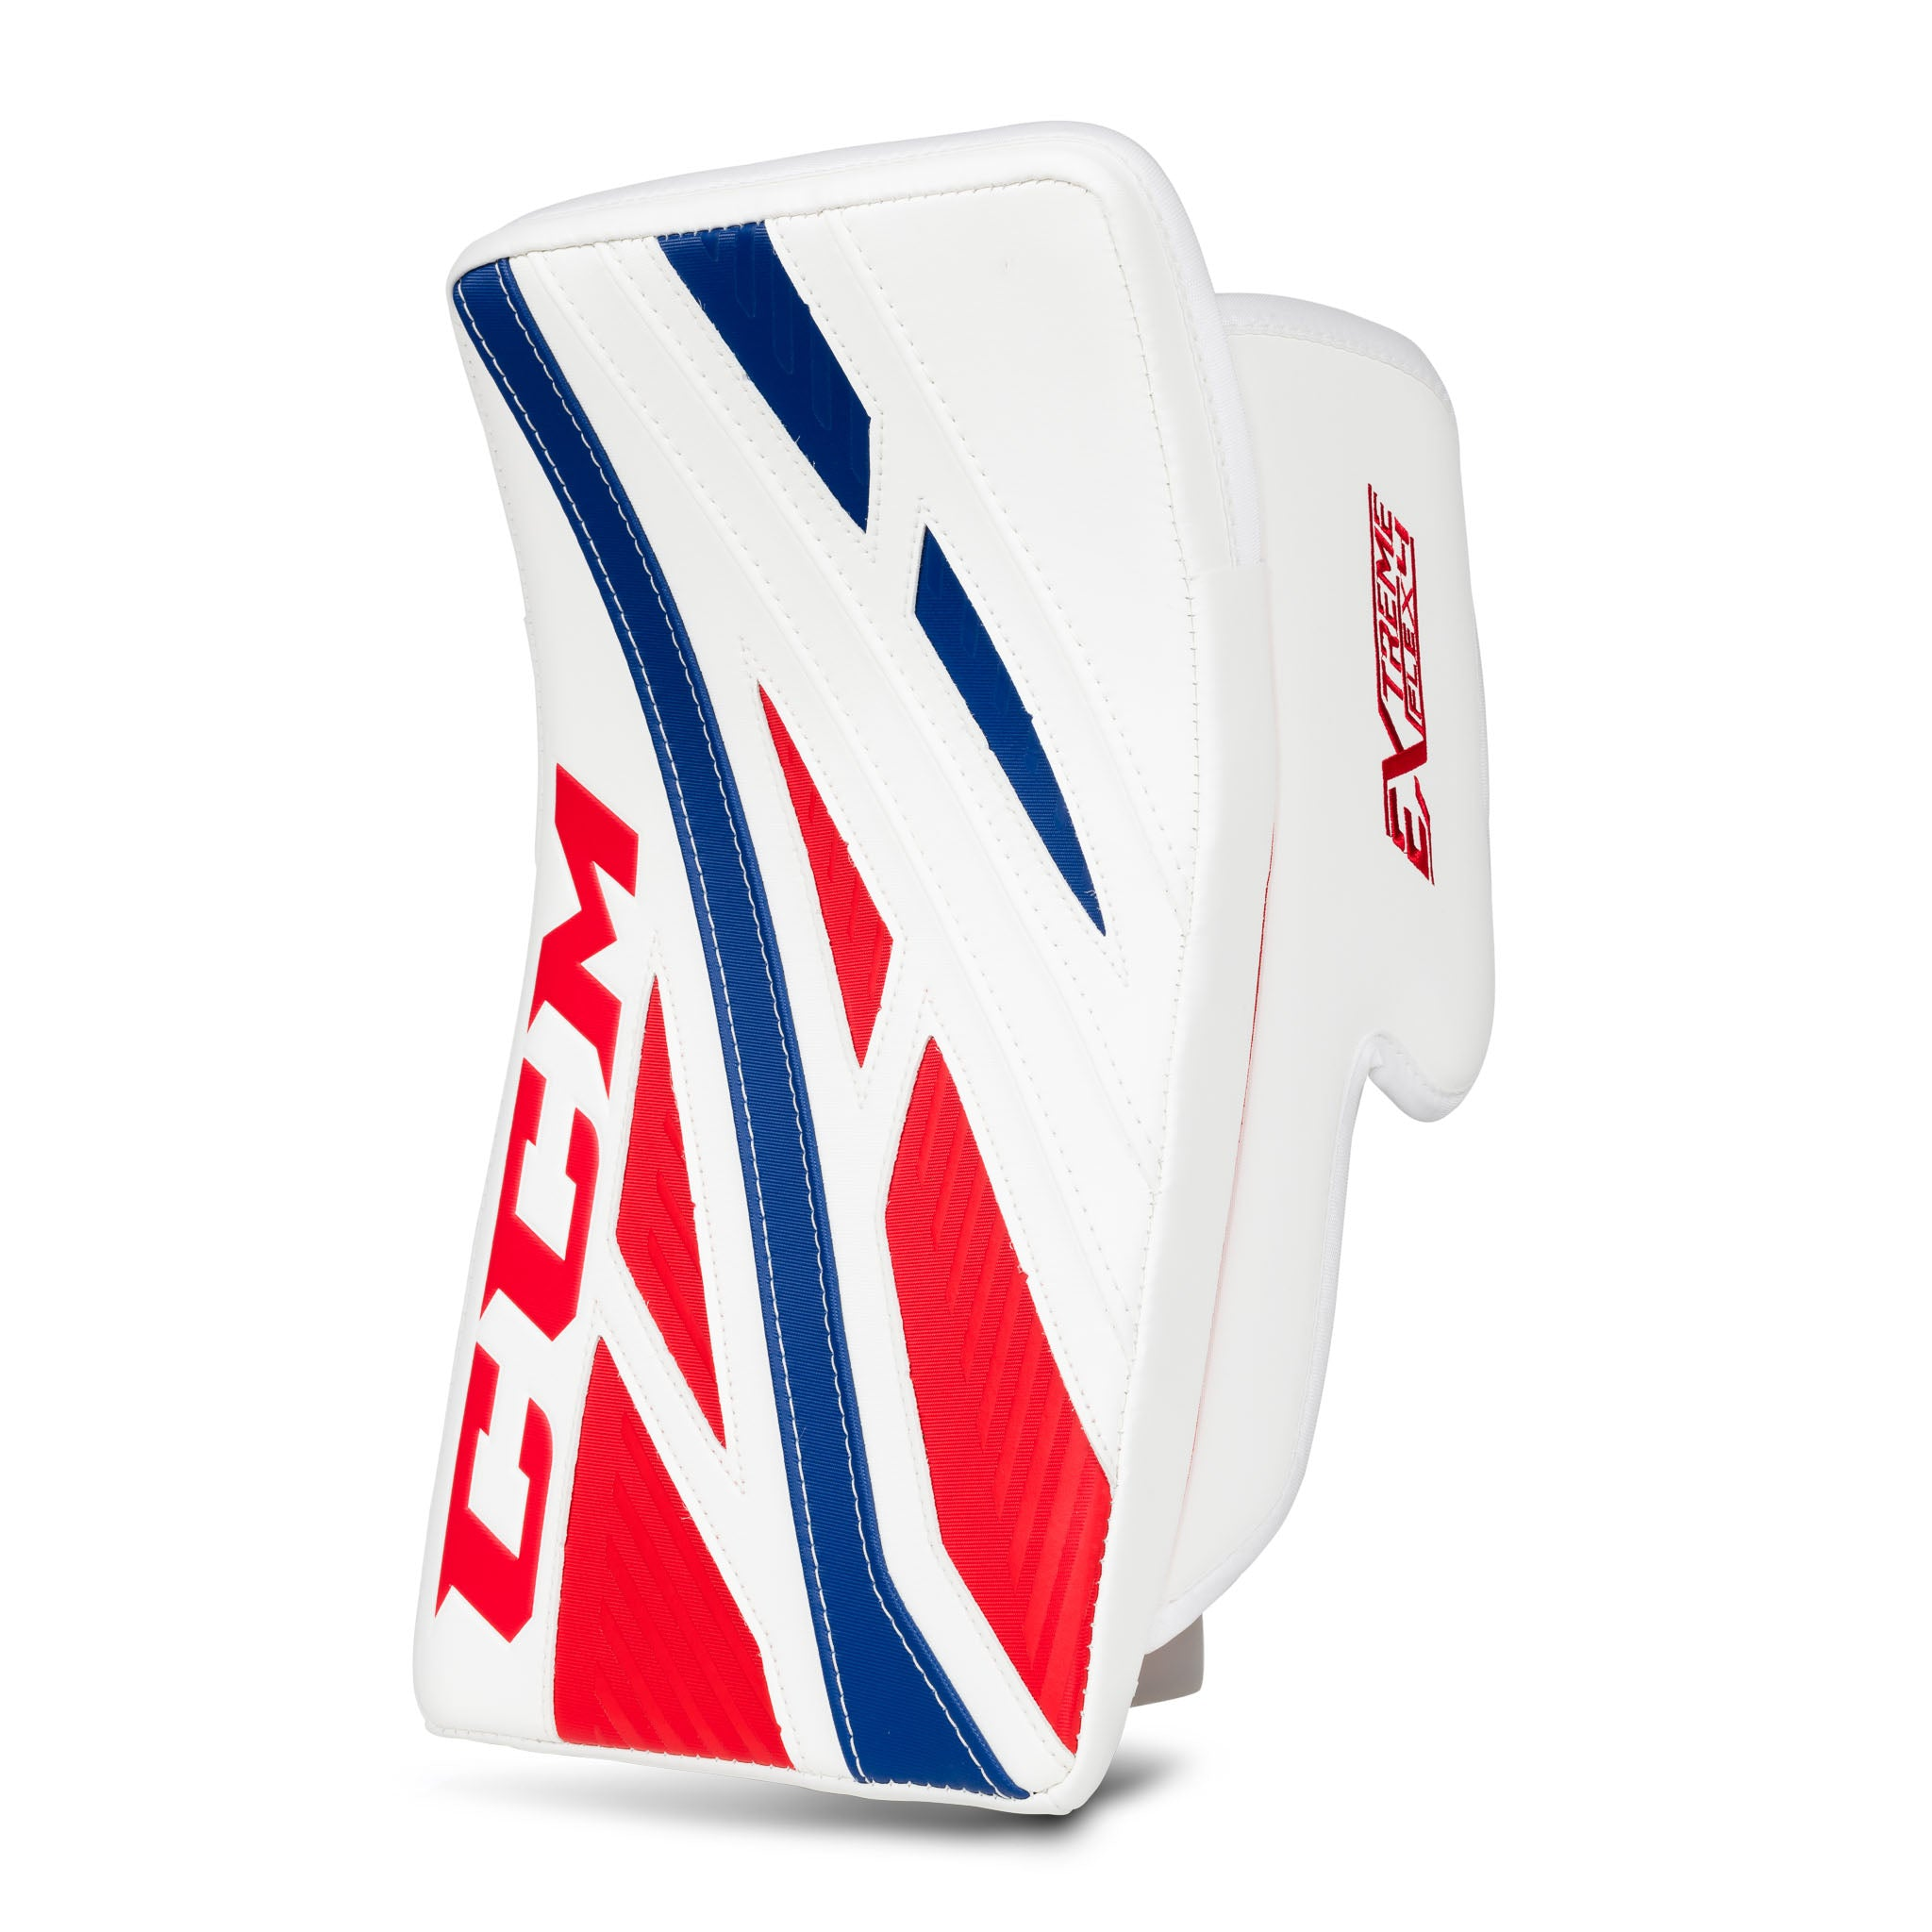 e4e61902c1c CCM Extreme Flex 4 Pro Senior Goalie Blocker – The Hockey Shop ...